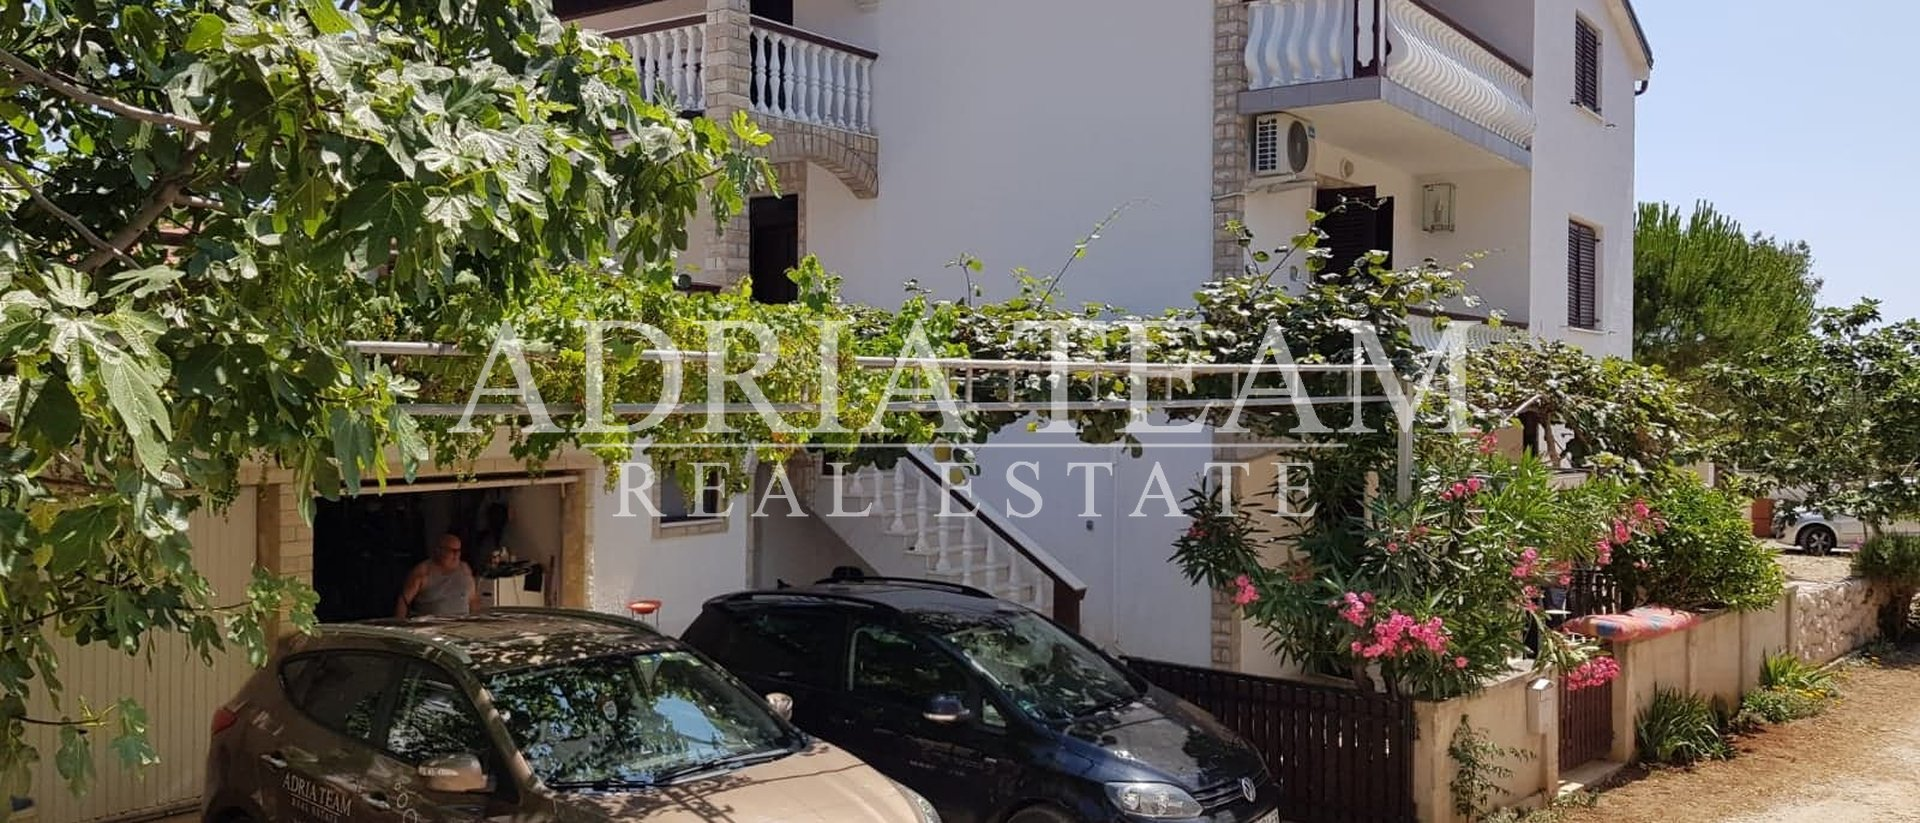 HOUSE WITH 3 RESIDENTIAL UNITS AND SEA VIEW, 50 M FROM THE SEA, SALE!!! VIR